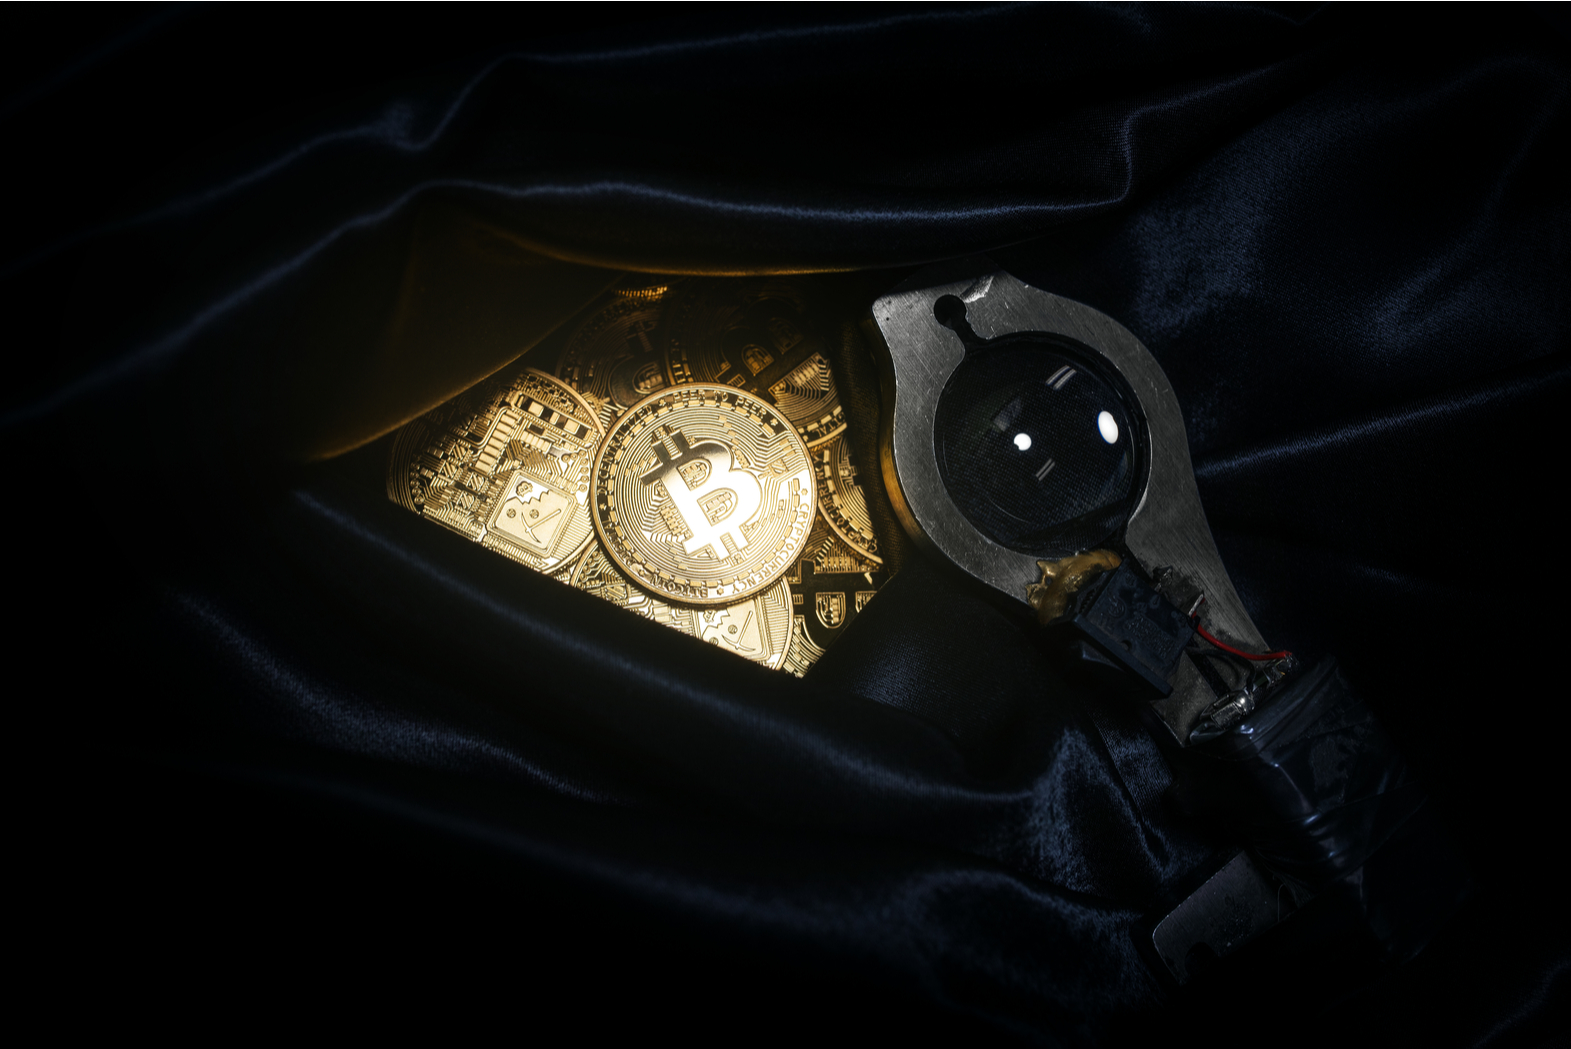 With the Bitcoin price up, cryptocurrency thefts could total $4.3bn in 2019